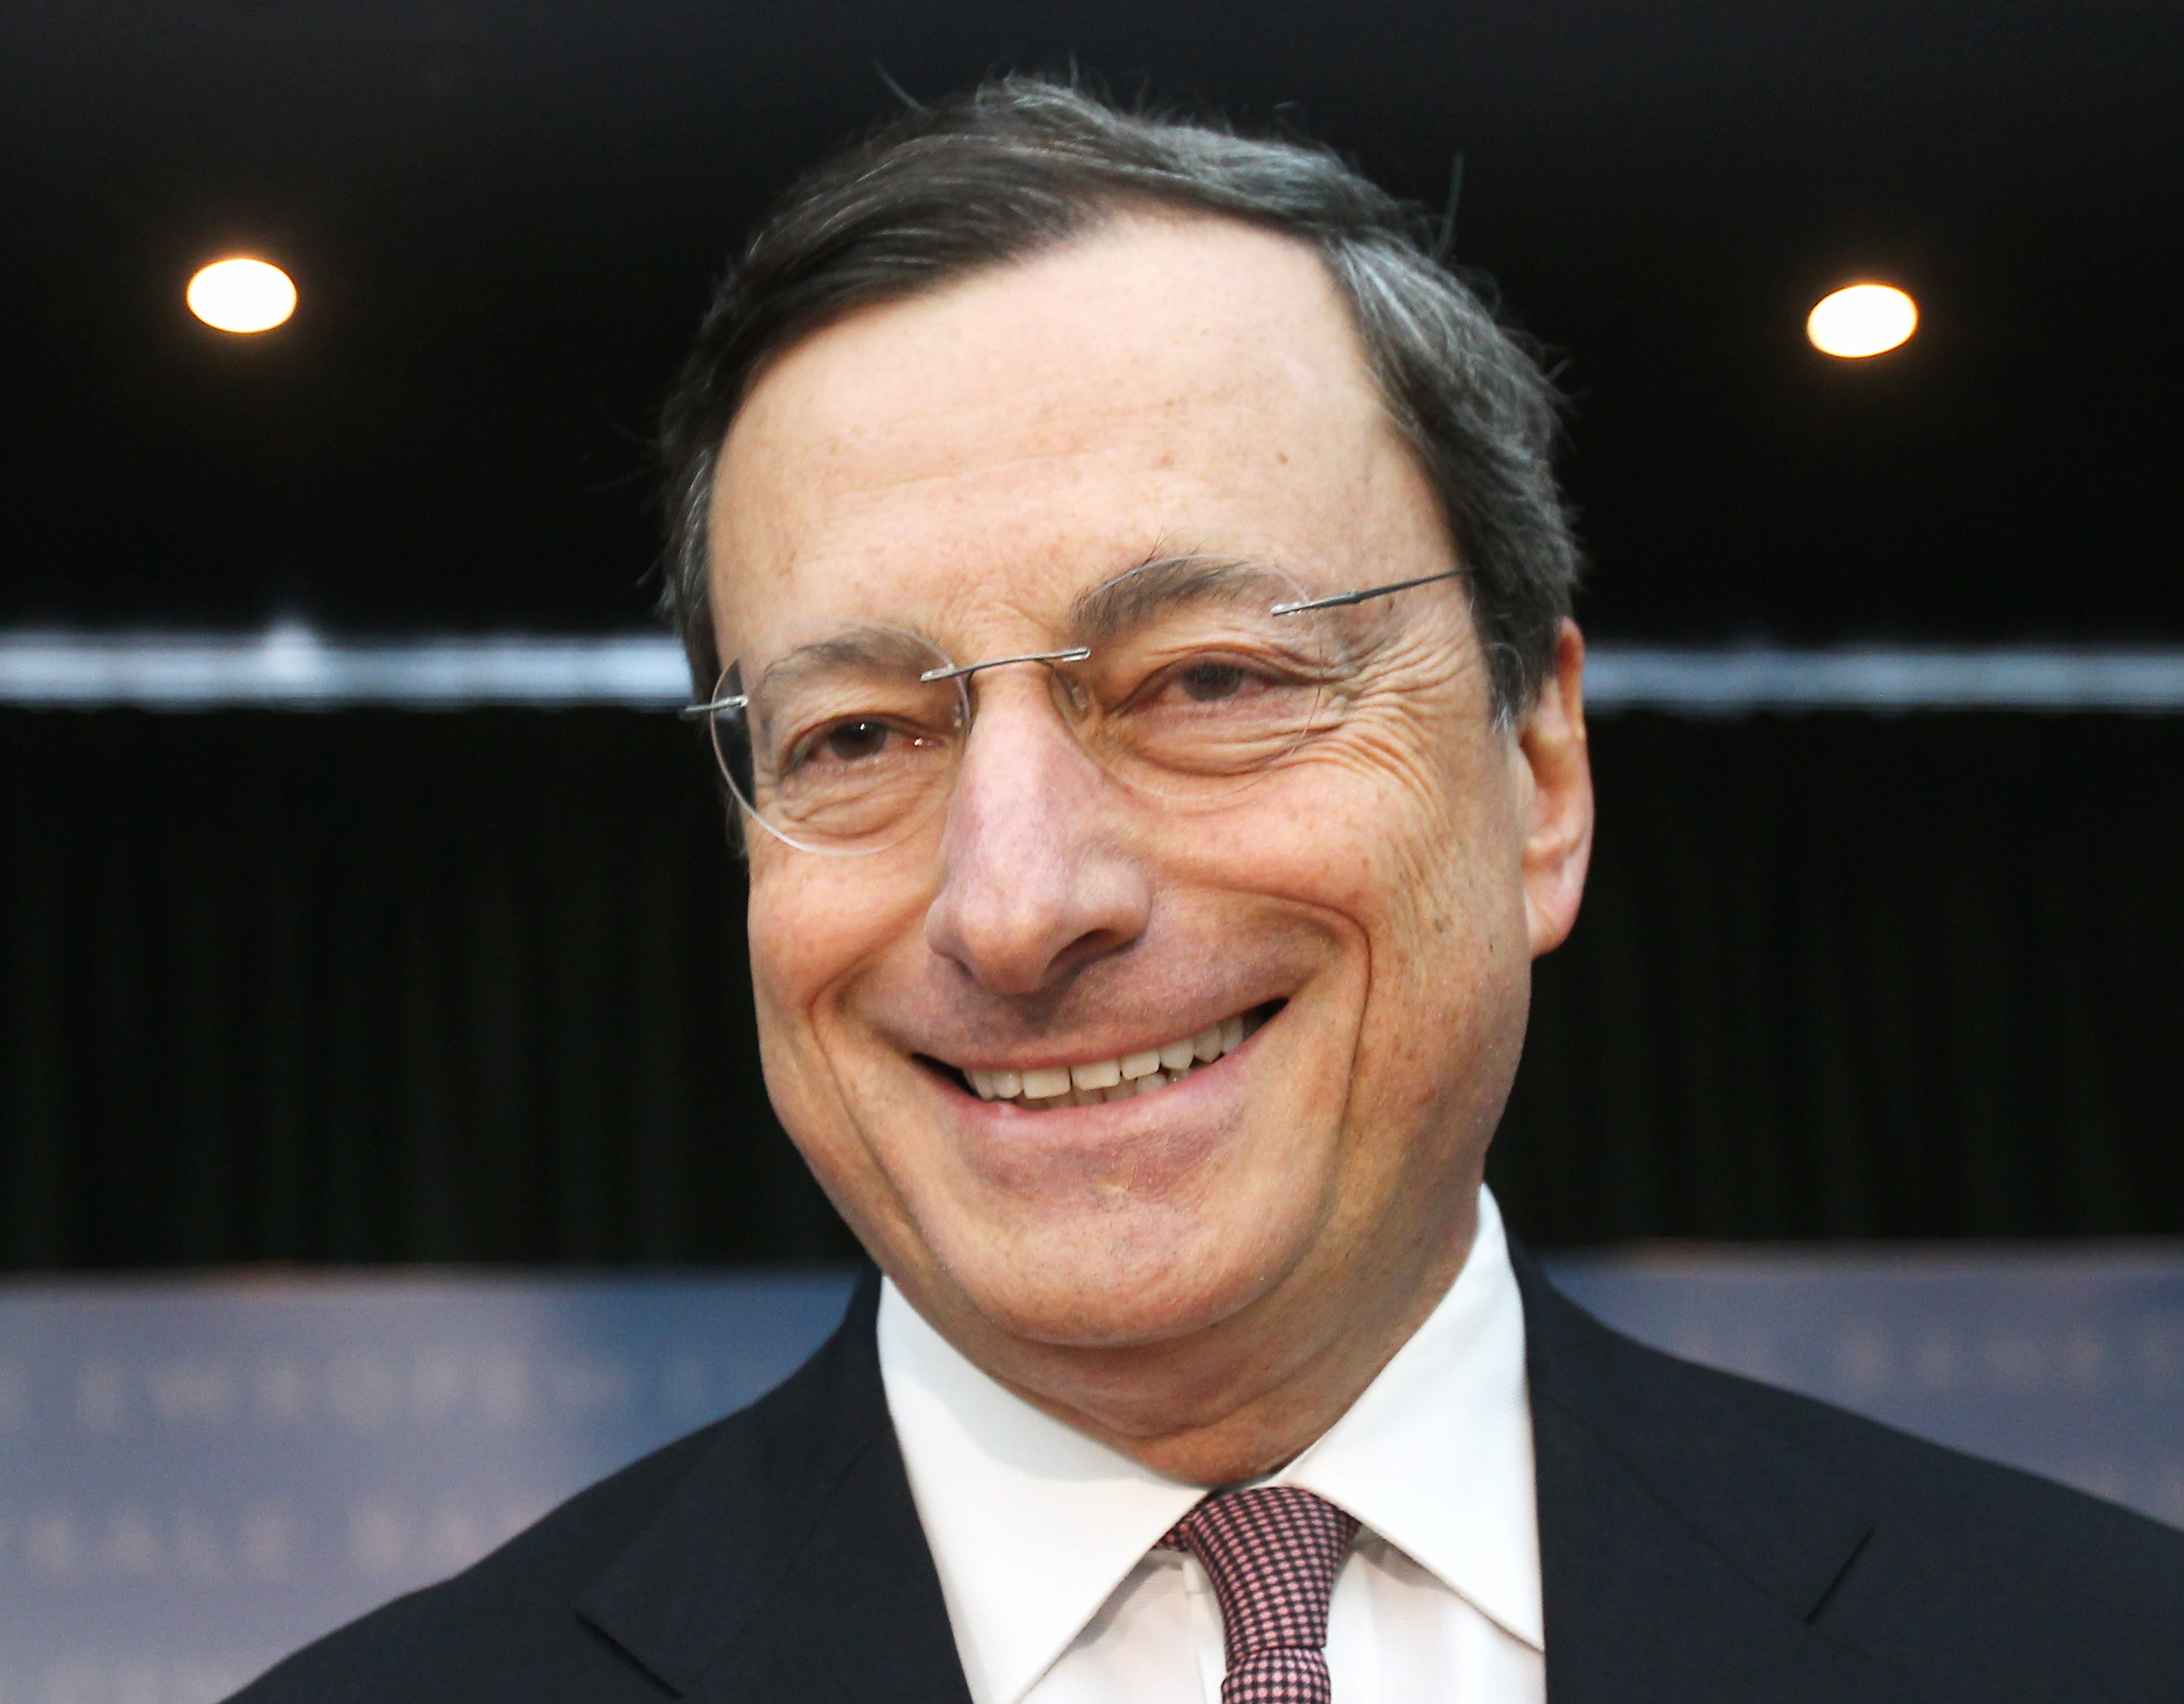 mario draghi, presidente del banco central europeo (bce)